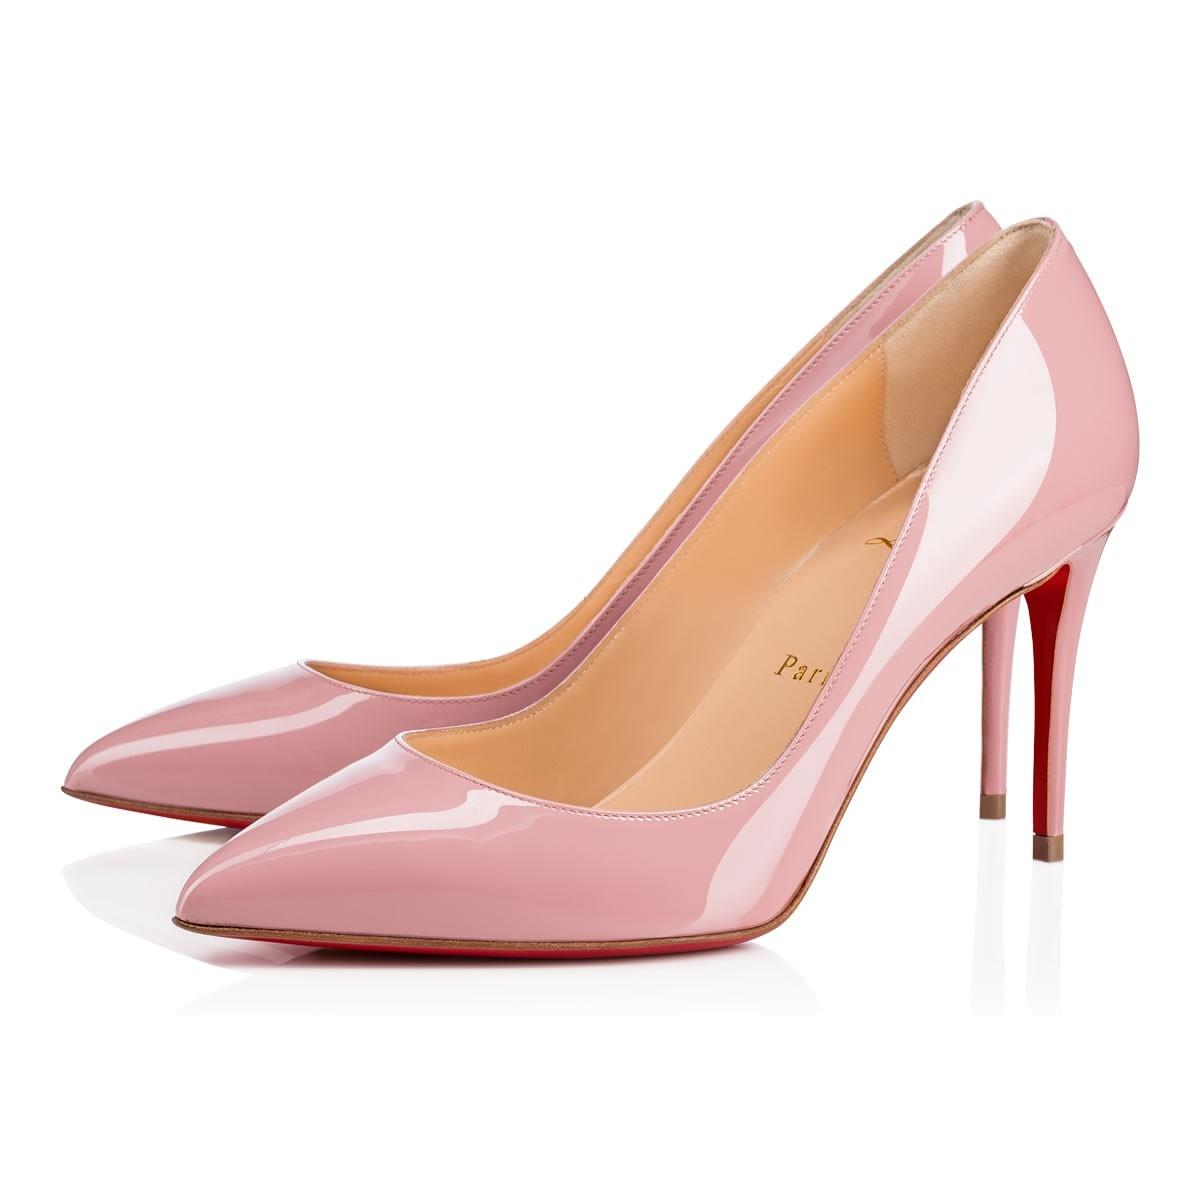 a253313a764a Christian Louboutin Pink Pink Pink Classic Pigalle Follies 85mm Voile Patent  Leather Point-toe Pumps